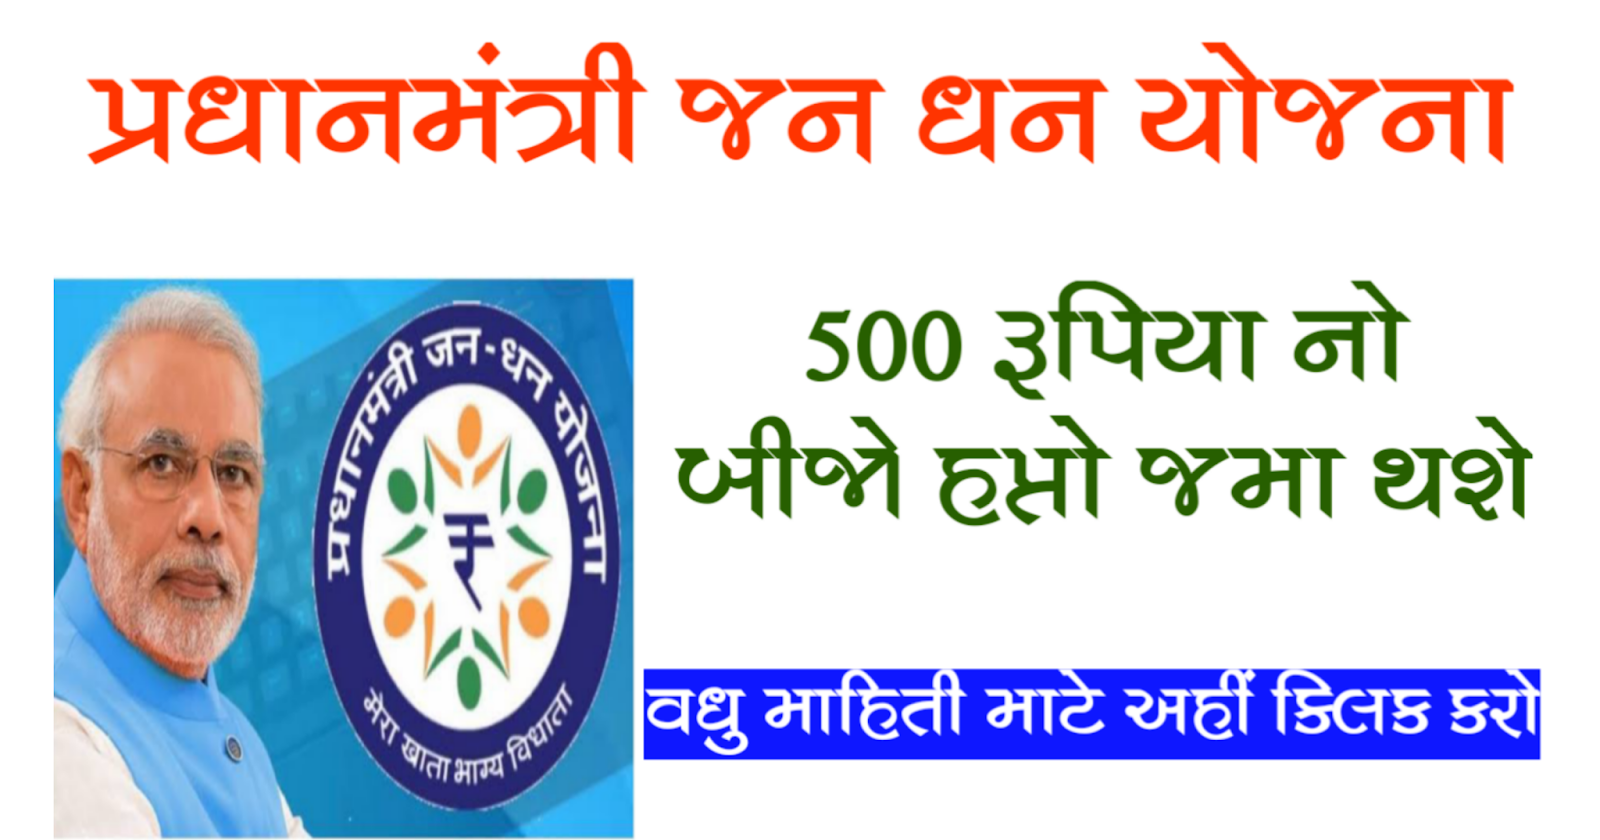 The Second Installment Of A Rs 500/- Will Be Credited To The Women Pradhanmantri Jan Dhan Account Of Monday